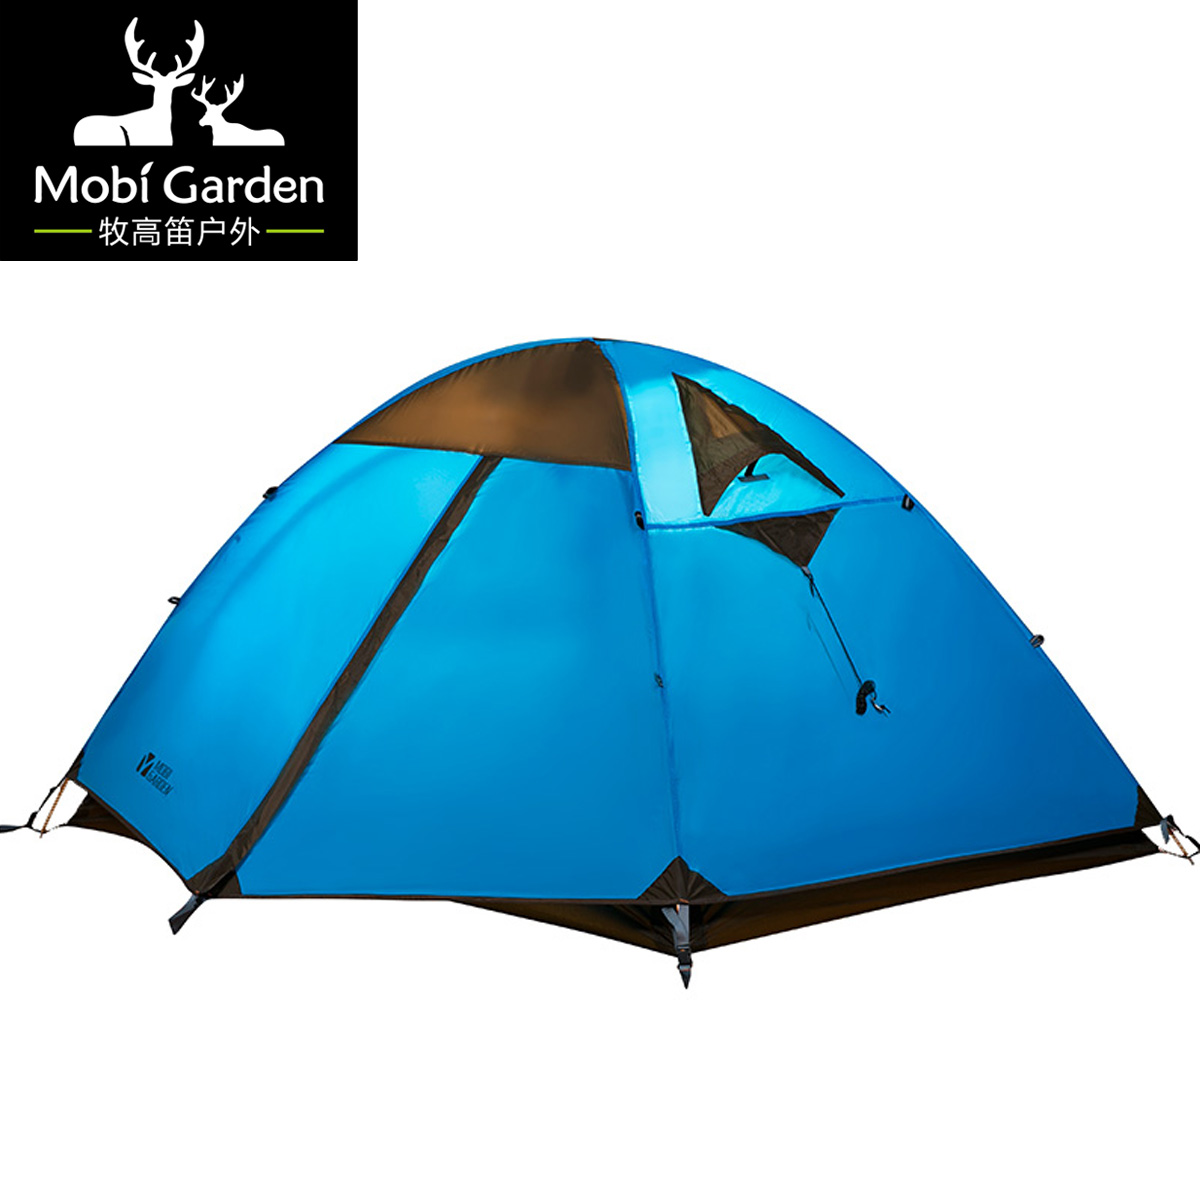 Outdoor hiking windproof aluminum rod double layer tent 2 high quality outdoor 2 person camping tent double layer aluminum rod ultralight tent with snow skirt oneroad windsnow 2 plus